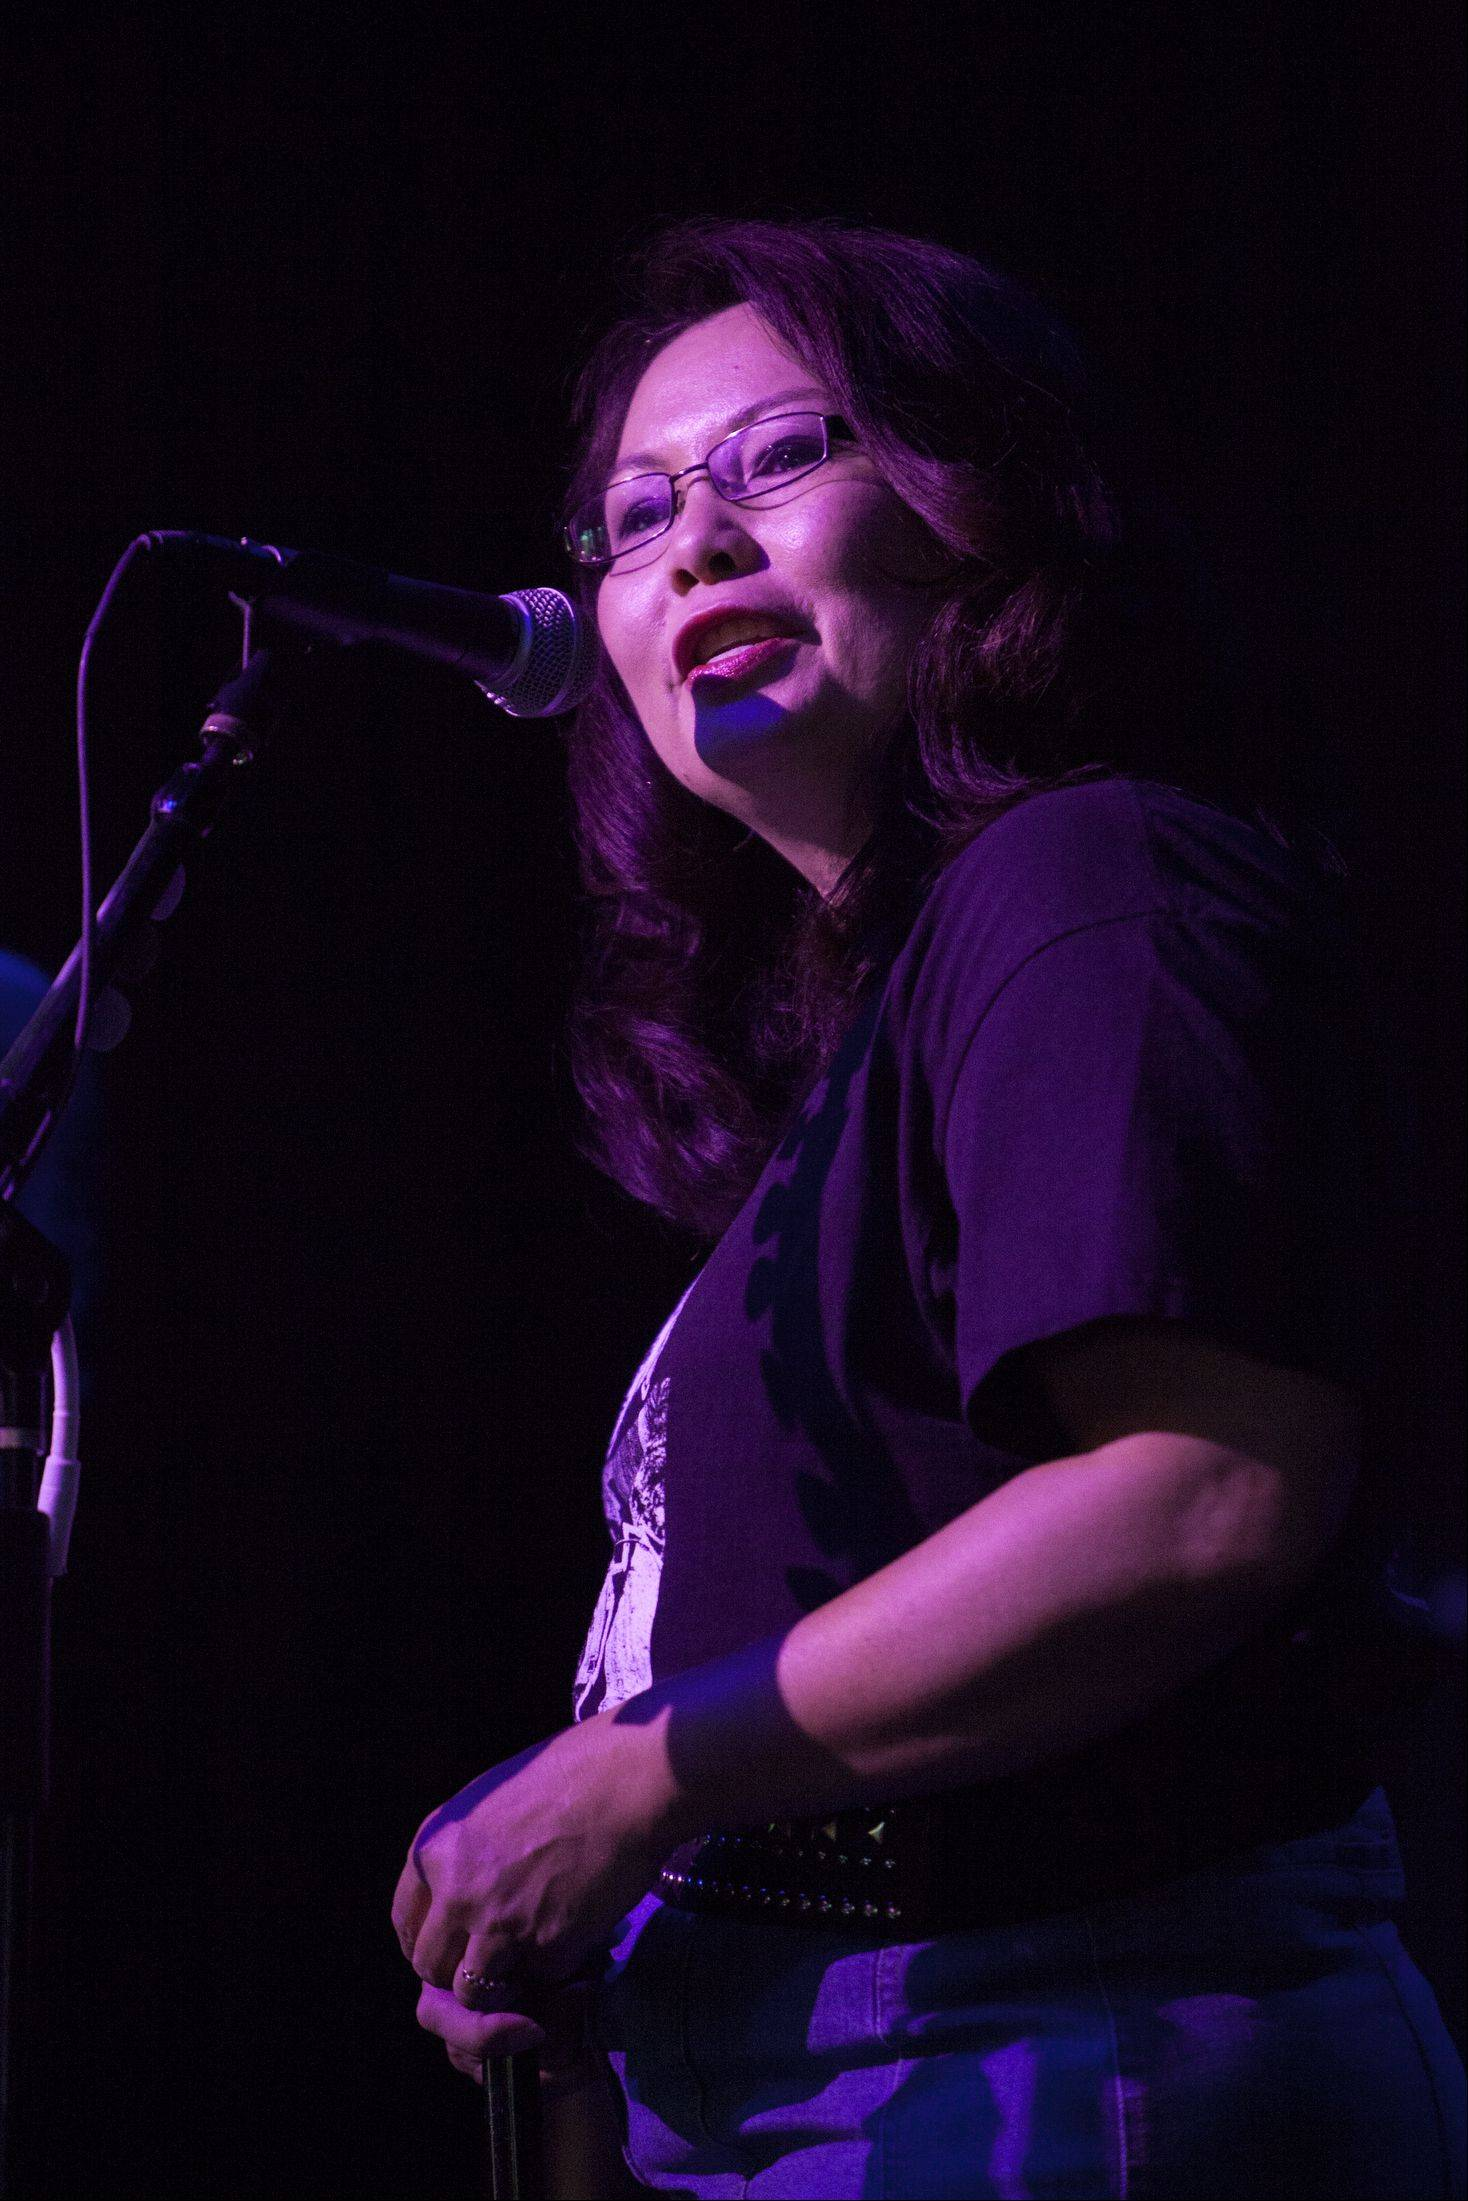 Tammy Duckworth speaks to a crowd of about 500 people before rocker Joe Walsh performed and reinforced his support for Duckworth.